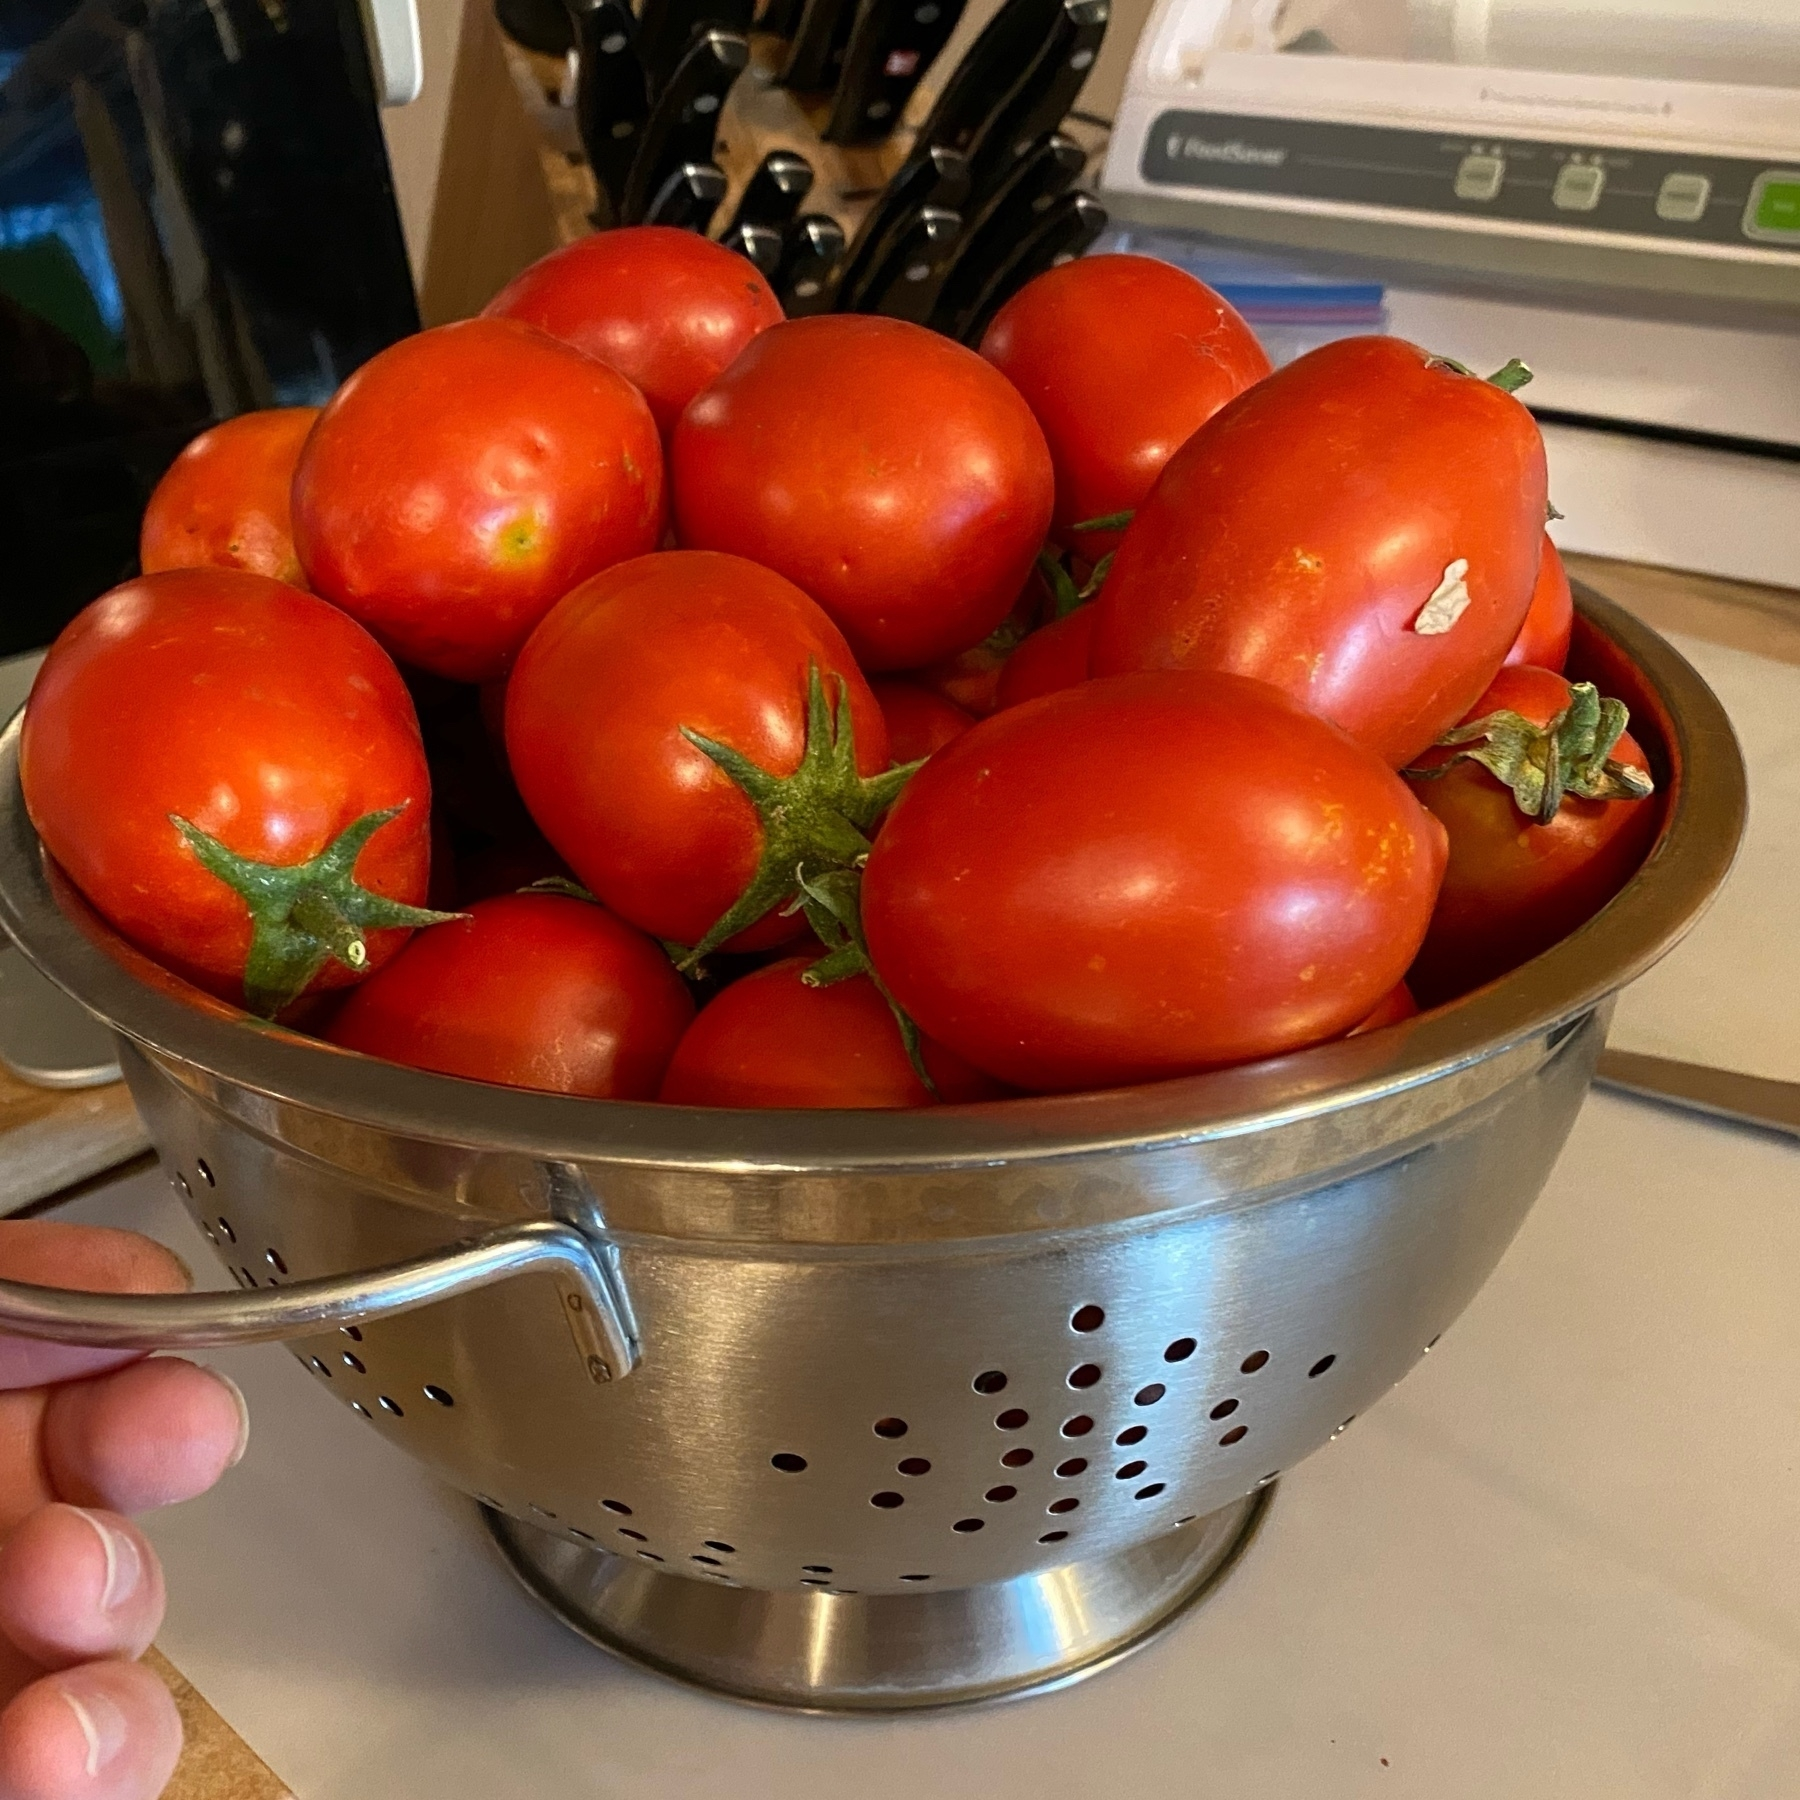 harvested ripe tomatoes, piled high in a metal colander